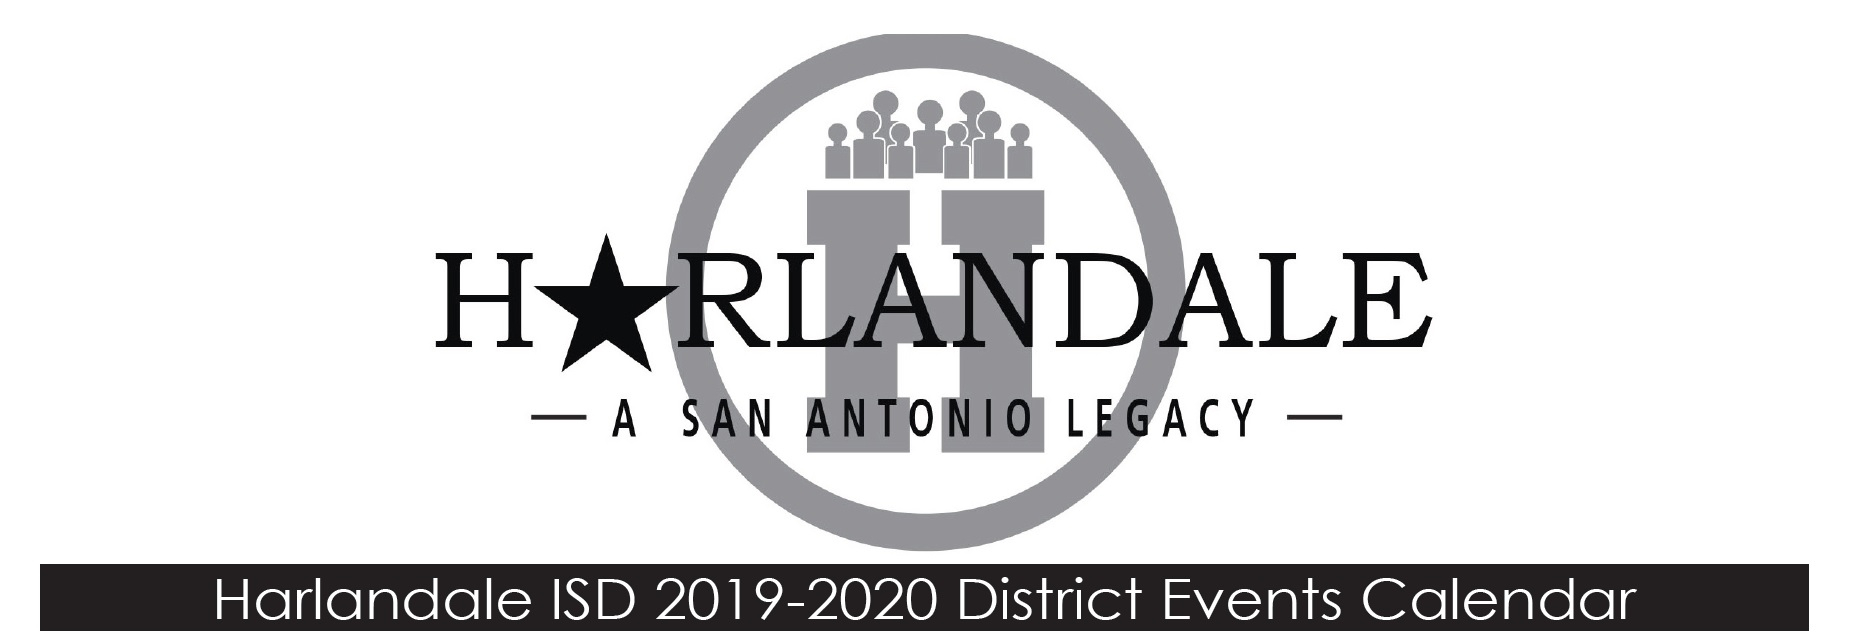 Harlandale Isd 20192020 District Events Calendar  Harland in Hisd Calendar 2018-19